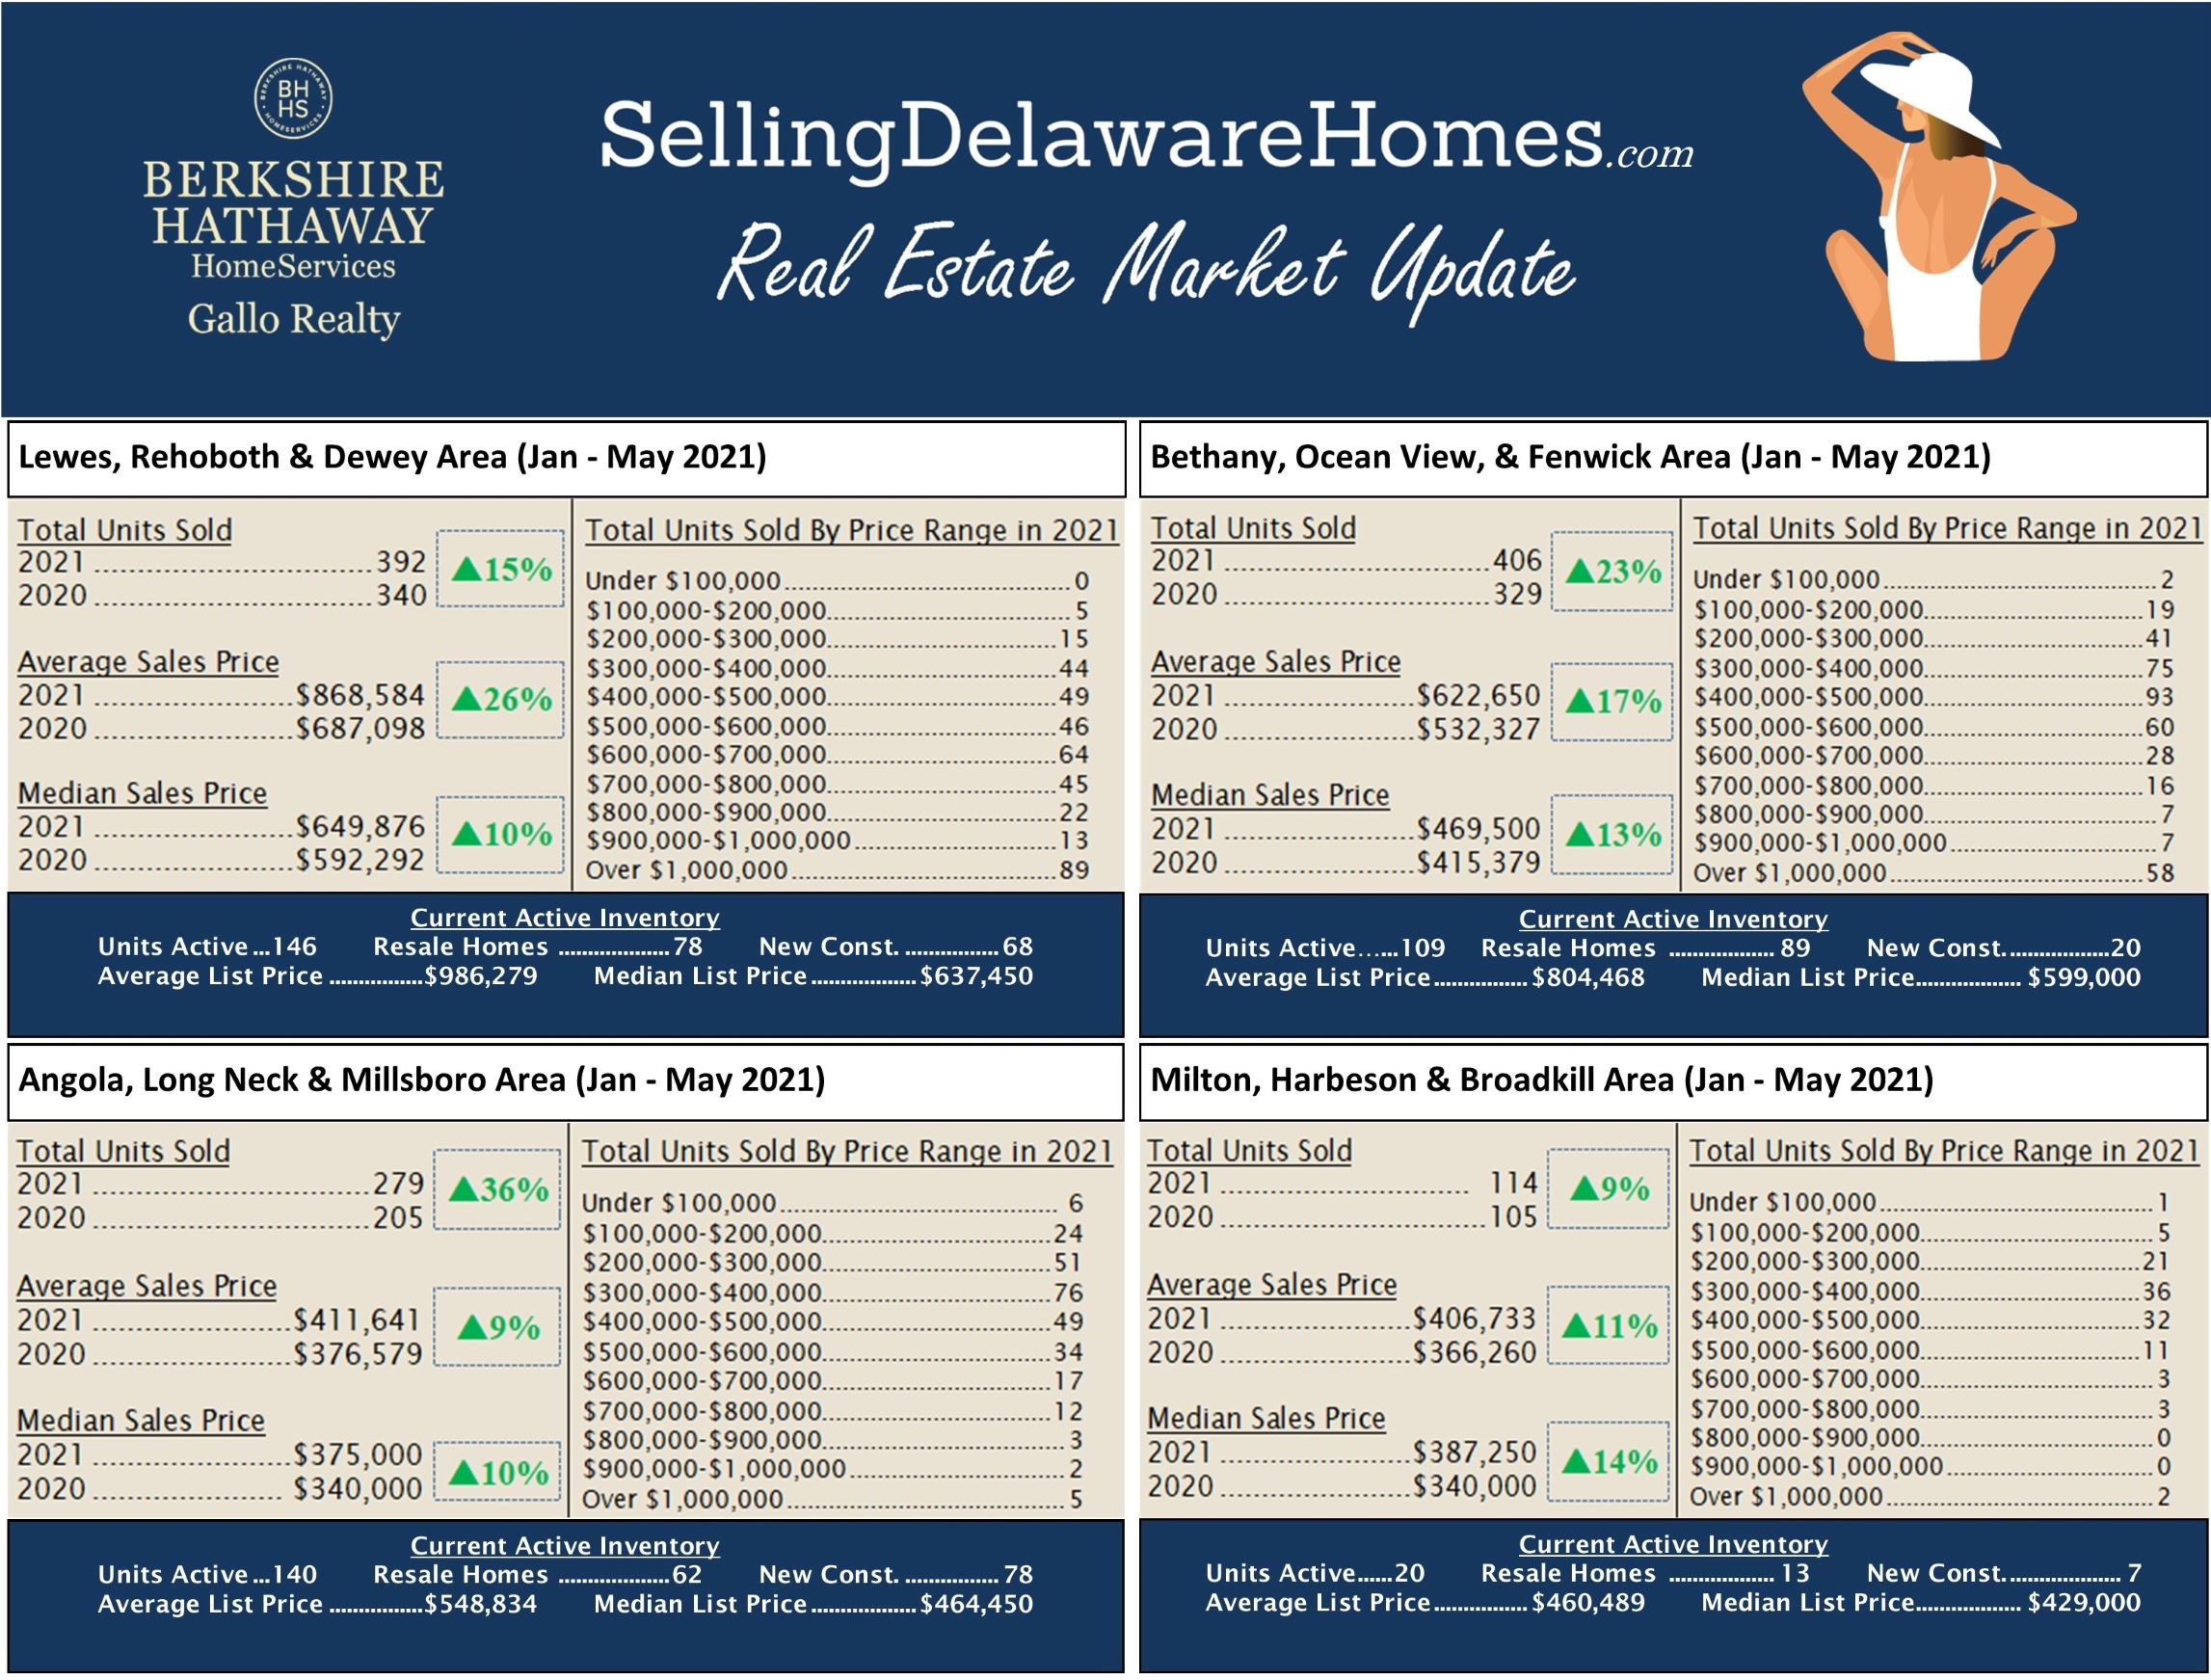 Jan - May 2021 Real Estate Update for Sussex County DE